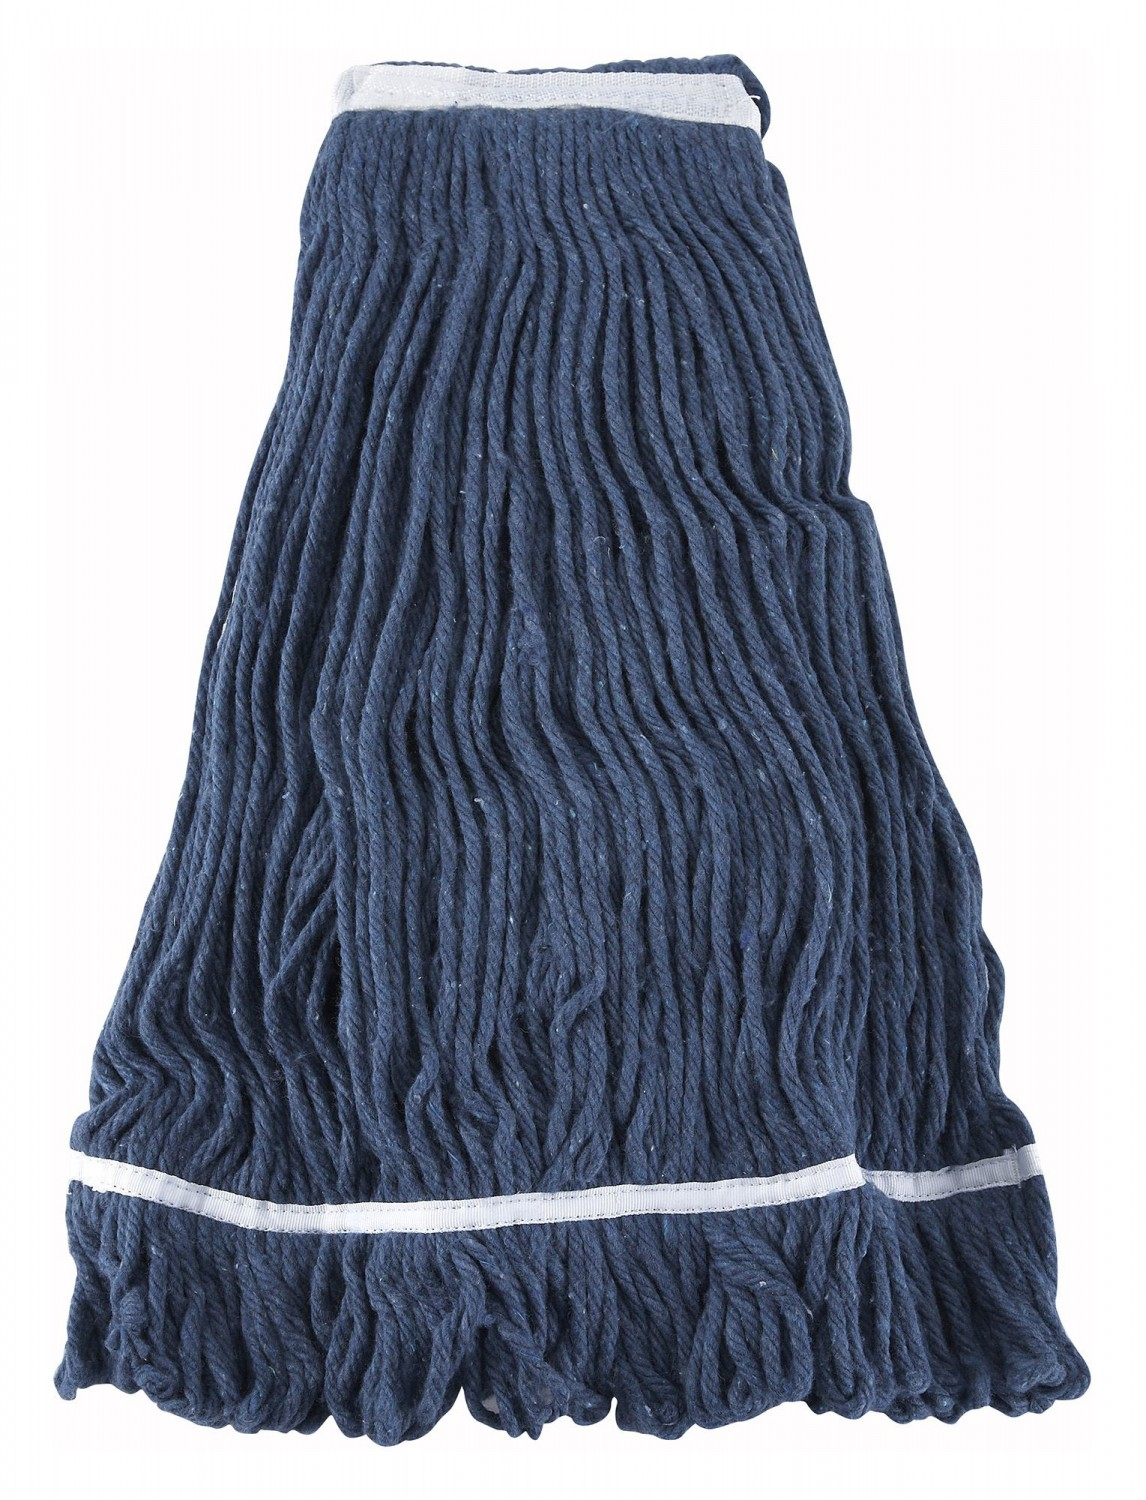 Winco MOP-32 Blue Yarn Mop Head with Looped End 32 oz.